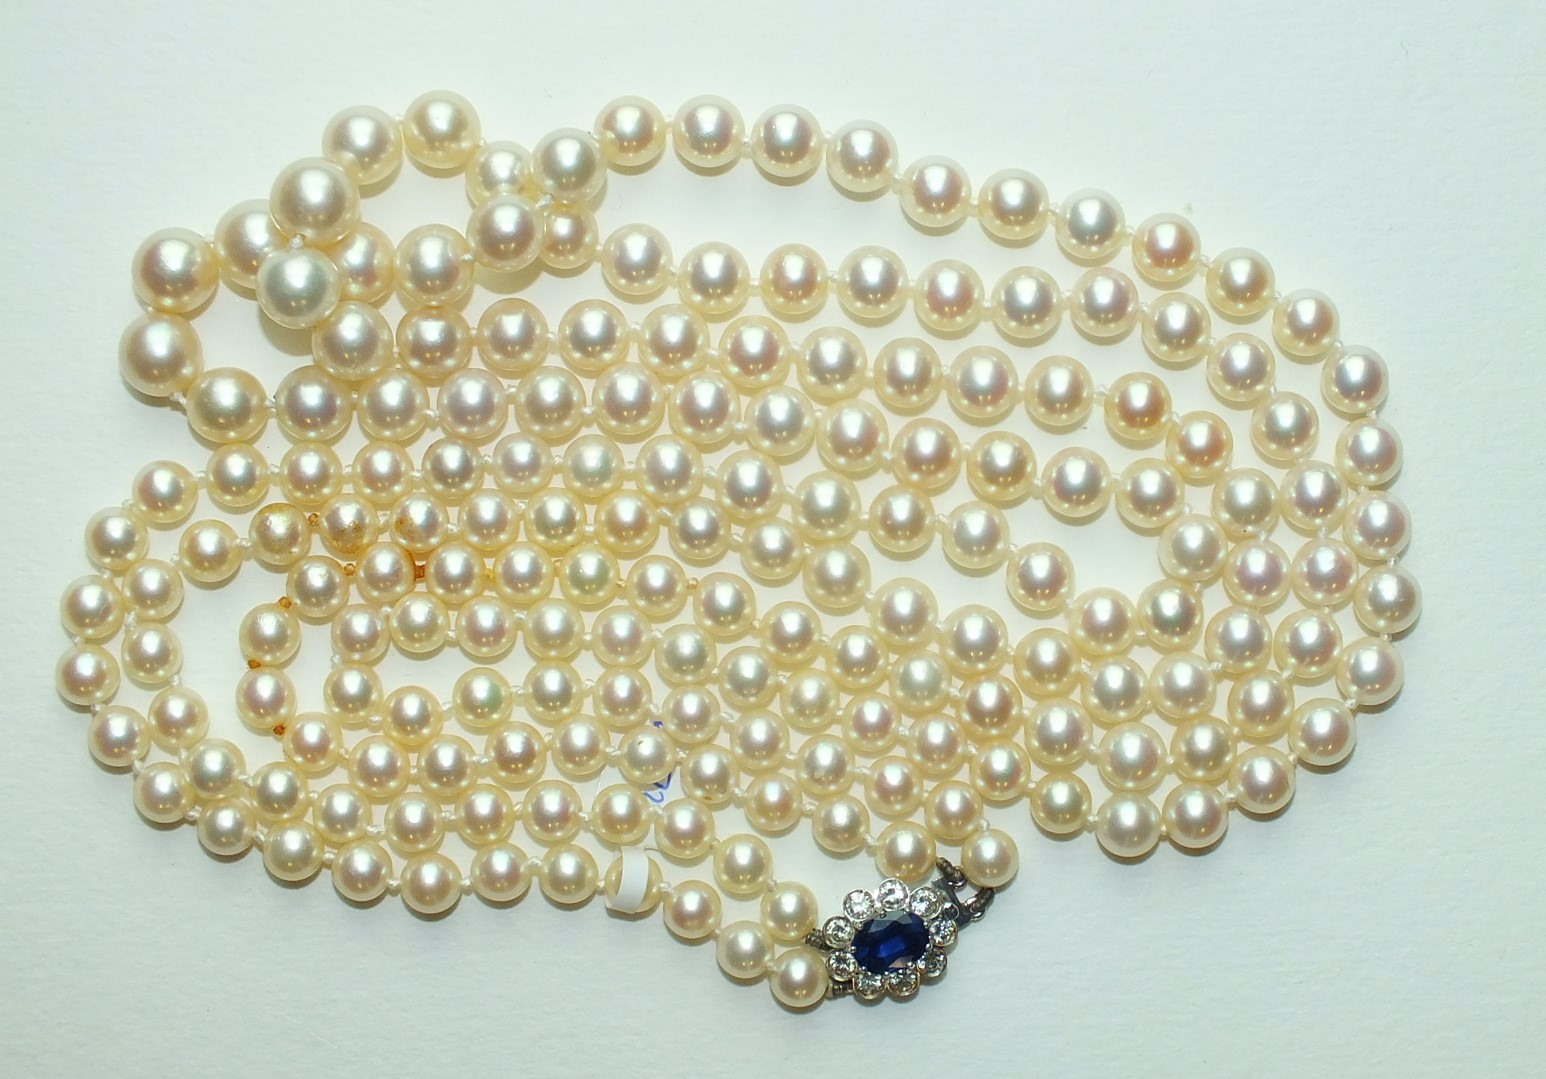 A long necklace of graduated cultured pearls, 6.5mm to 9.5mm, with 18ct white gold clasp set an oval